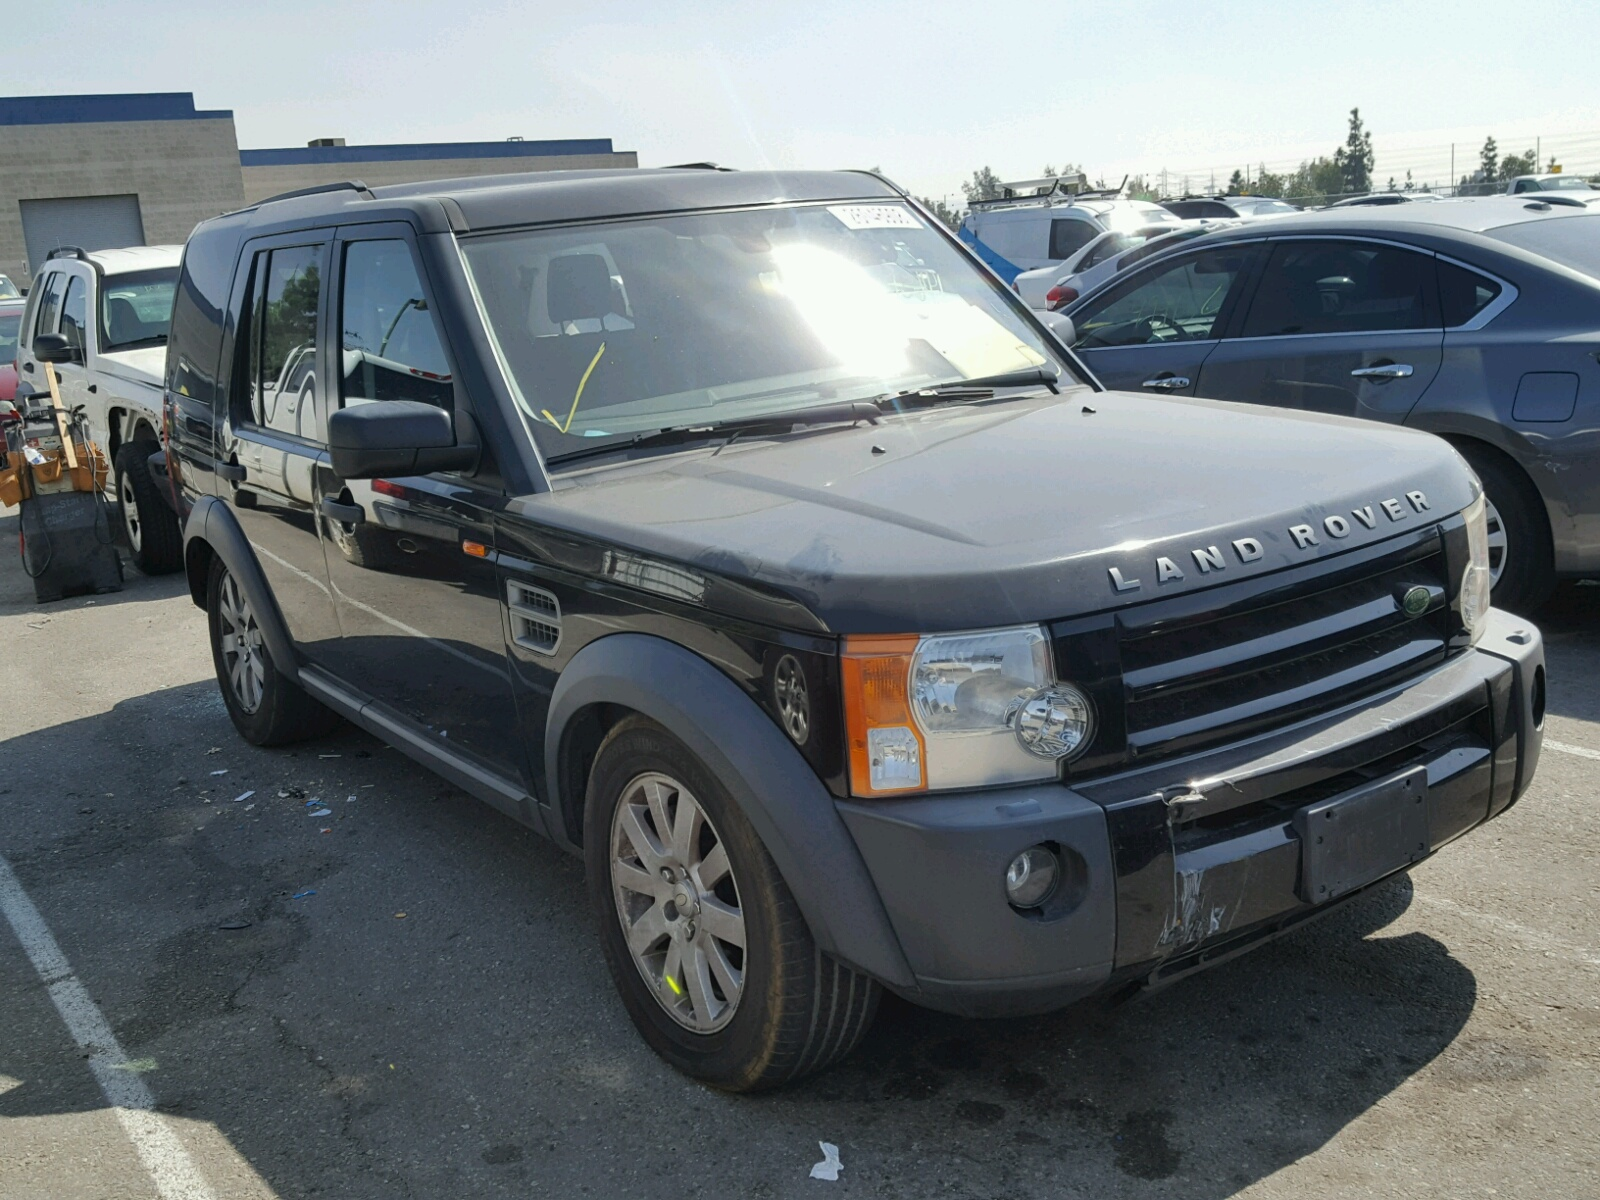 des for auto left black on landrover land en view sale cert ia salvage moines copart rover carfinder lot online title in of hse auctions